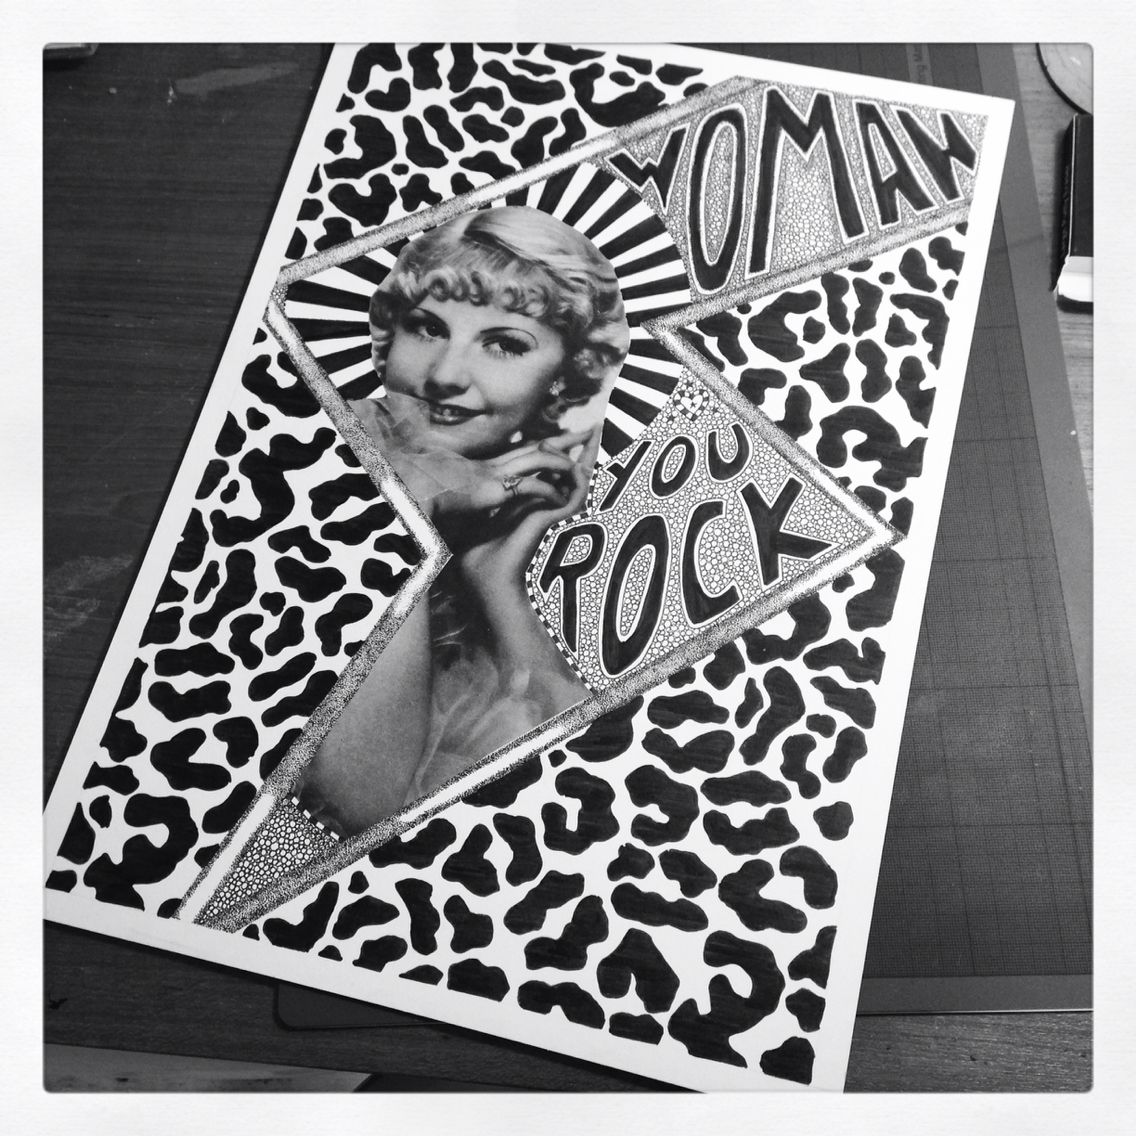 Woman you rock! By GIRL SHIT collage pen n ink